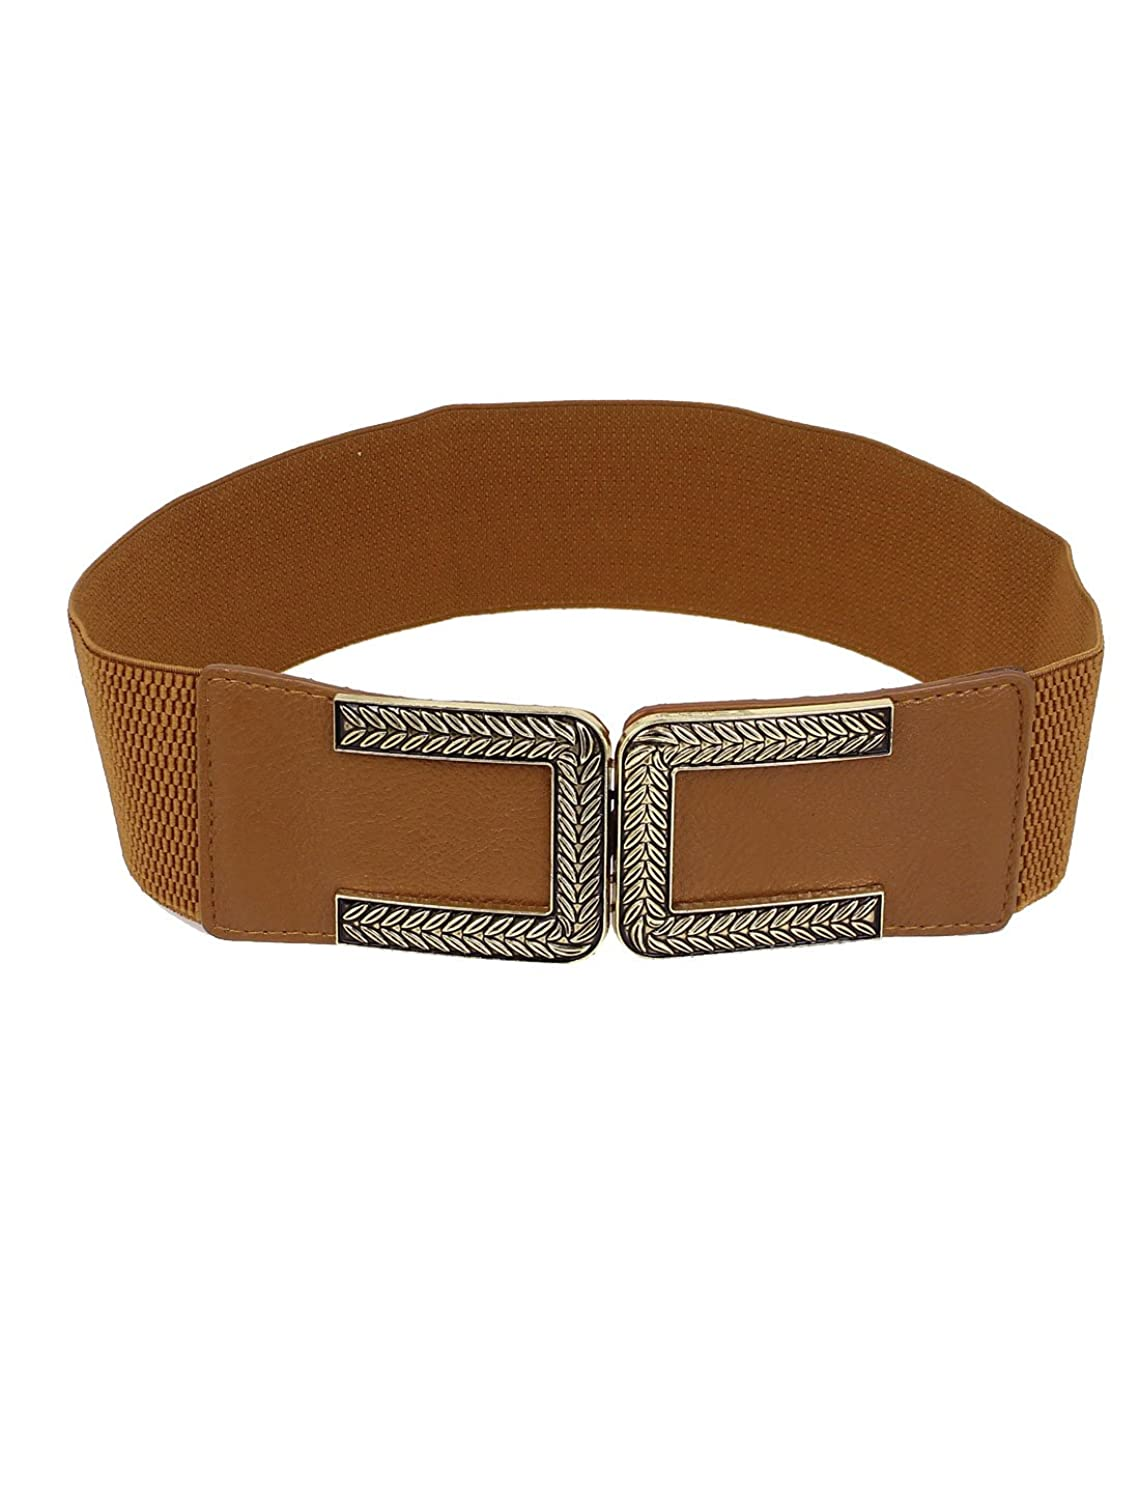 Metal Leaf Carved Interlock Buckle Stretch Cinch Waist Belt Band Brown